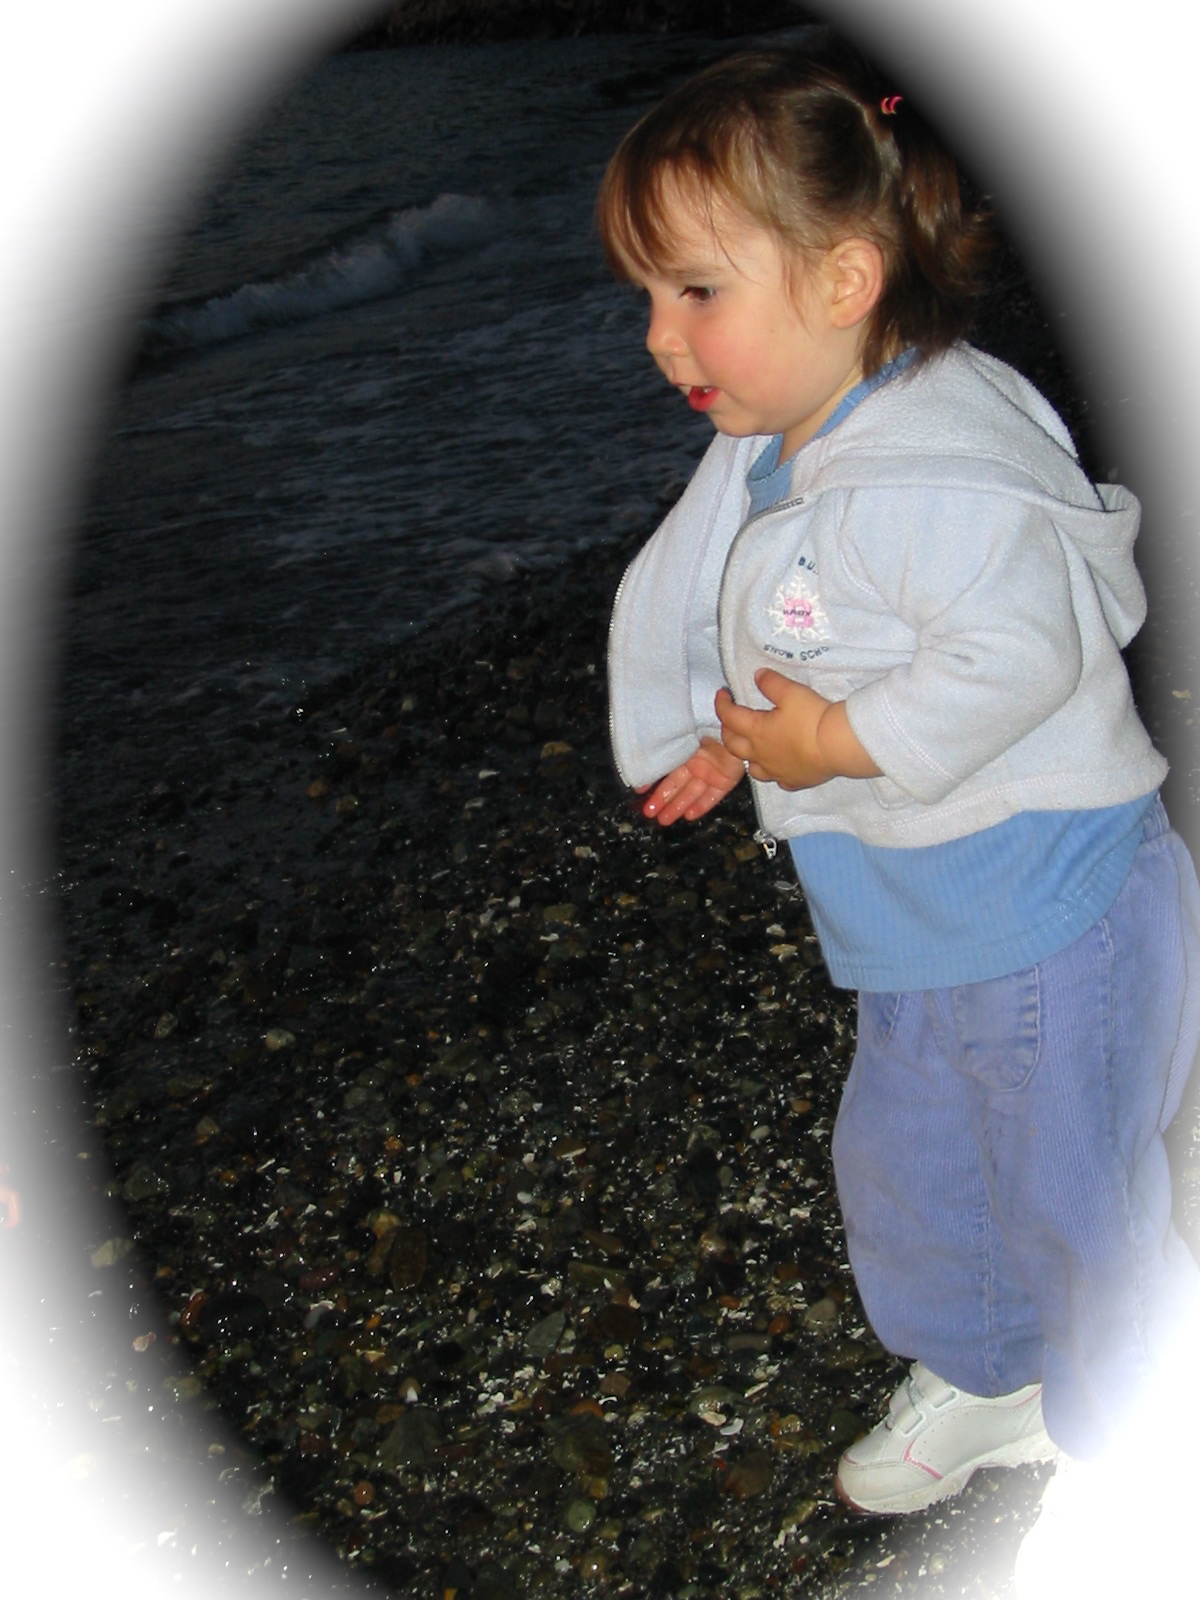 Talia is EXCITED to see ROCKS and WATER!